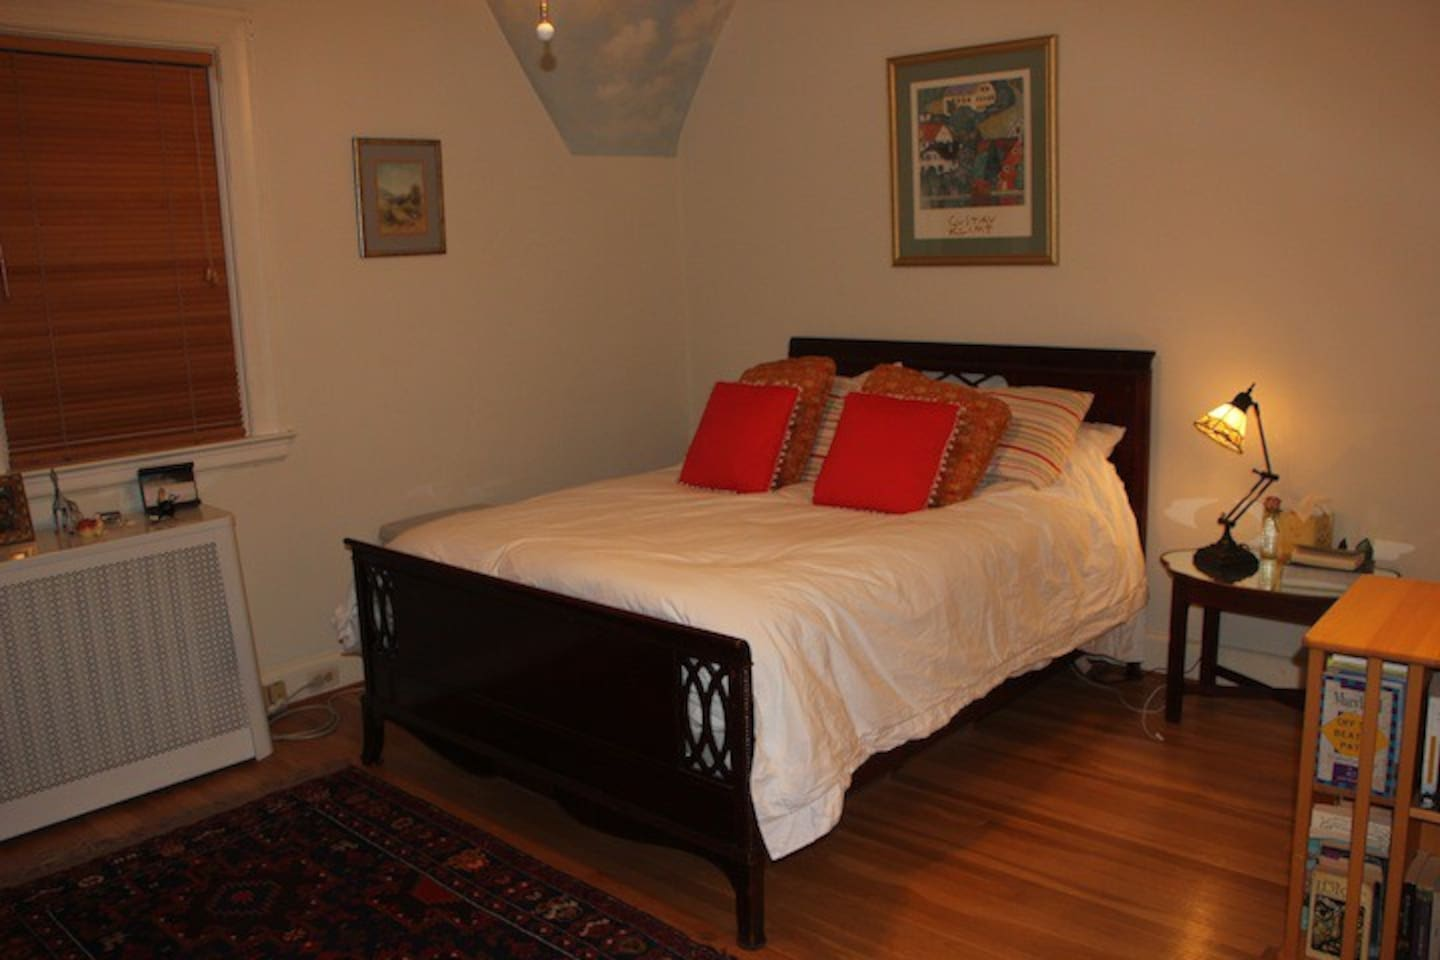 This ia s a photo of hte upstairs guest bedroom. It's very cozy and has a large closet.